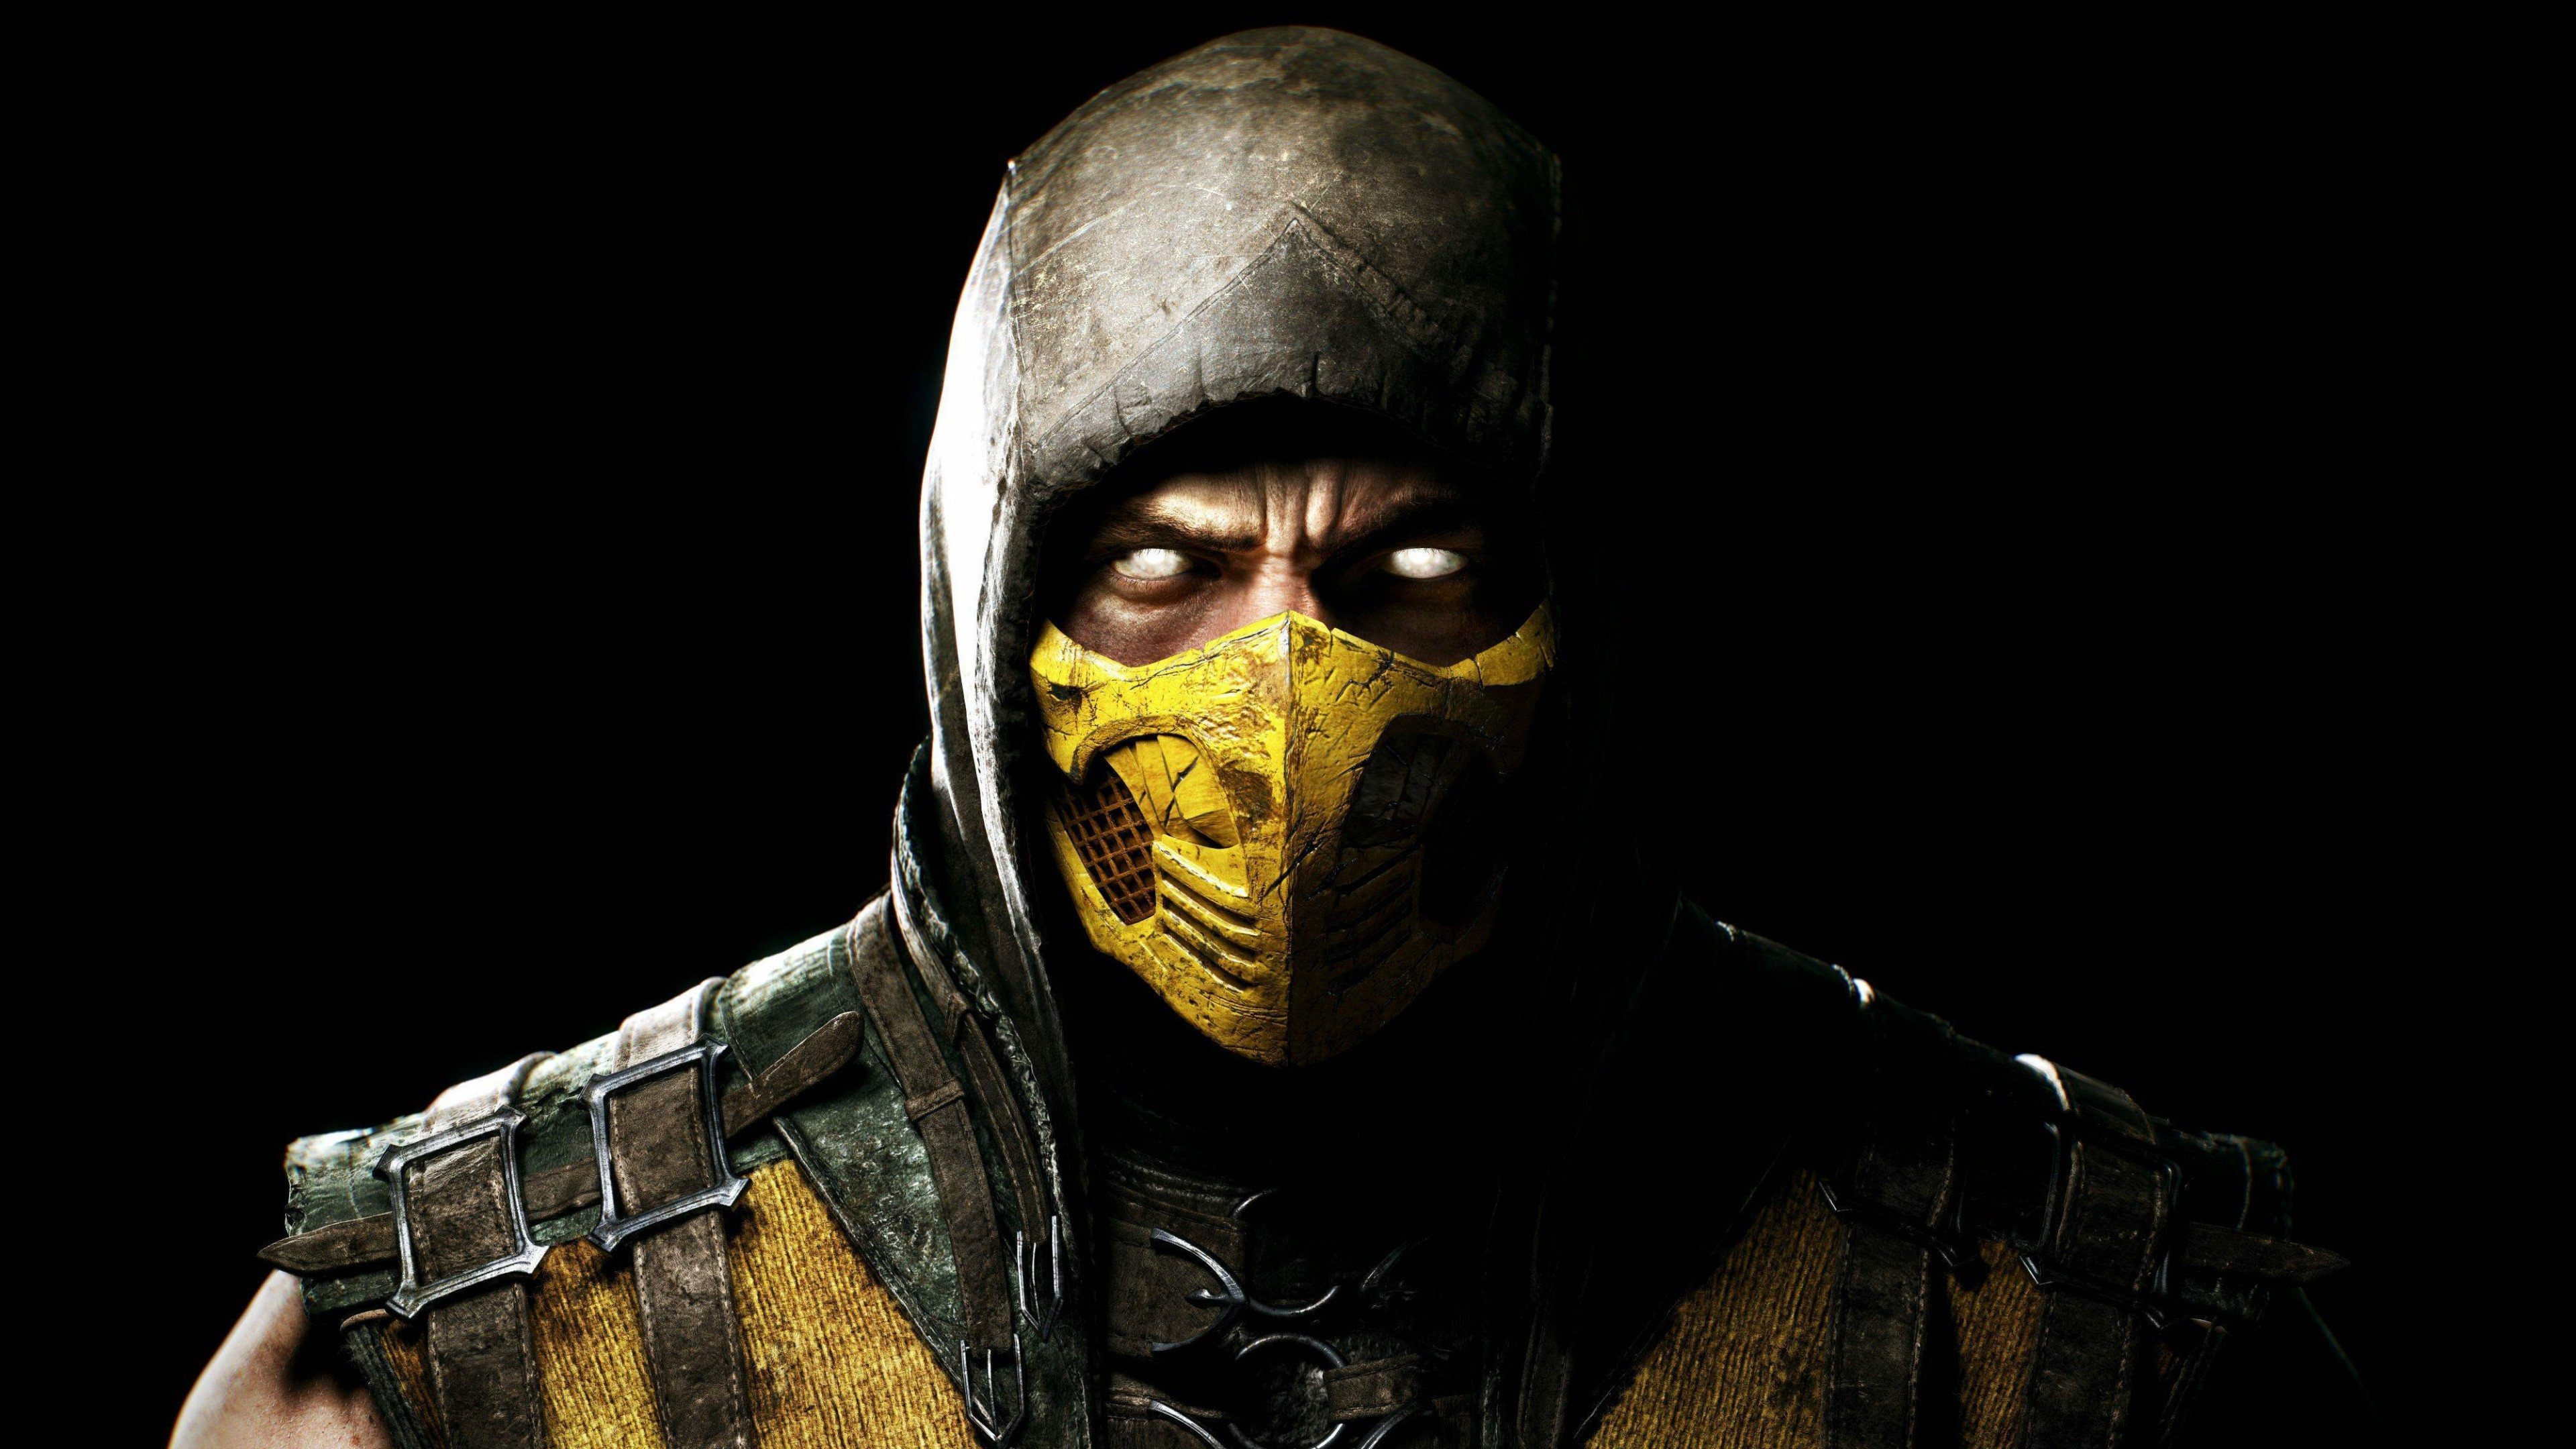 3840x2160 Preview wallpaper mortal kombat x, scorpio, ninja, mask